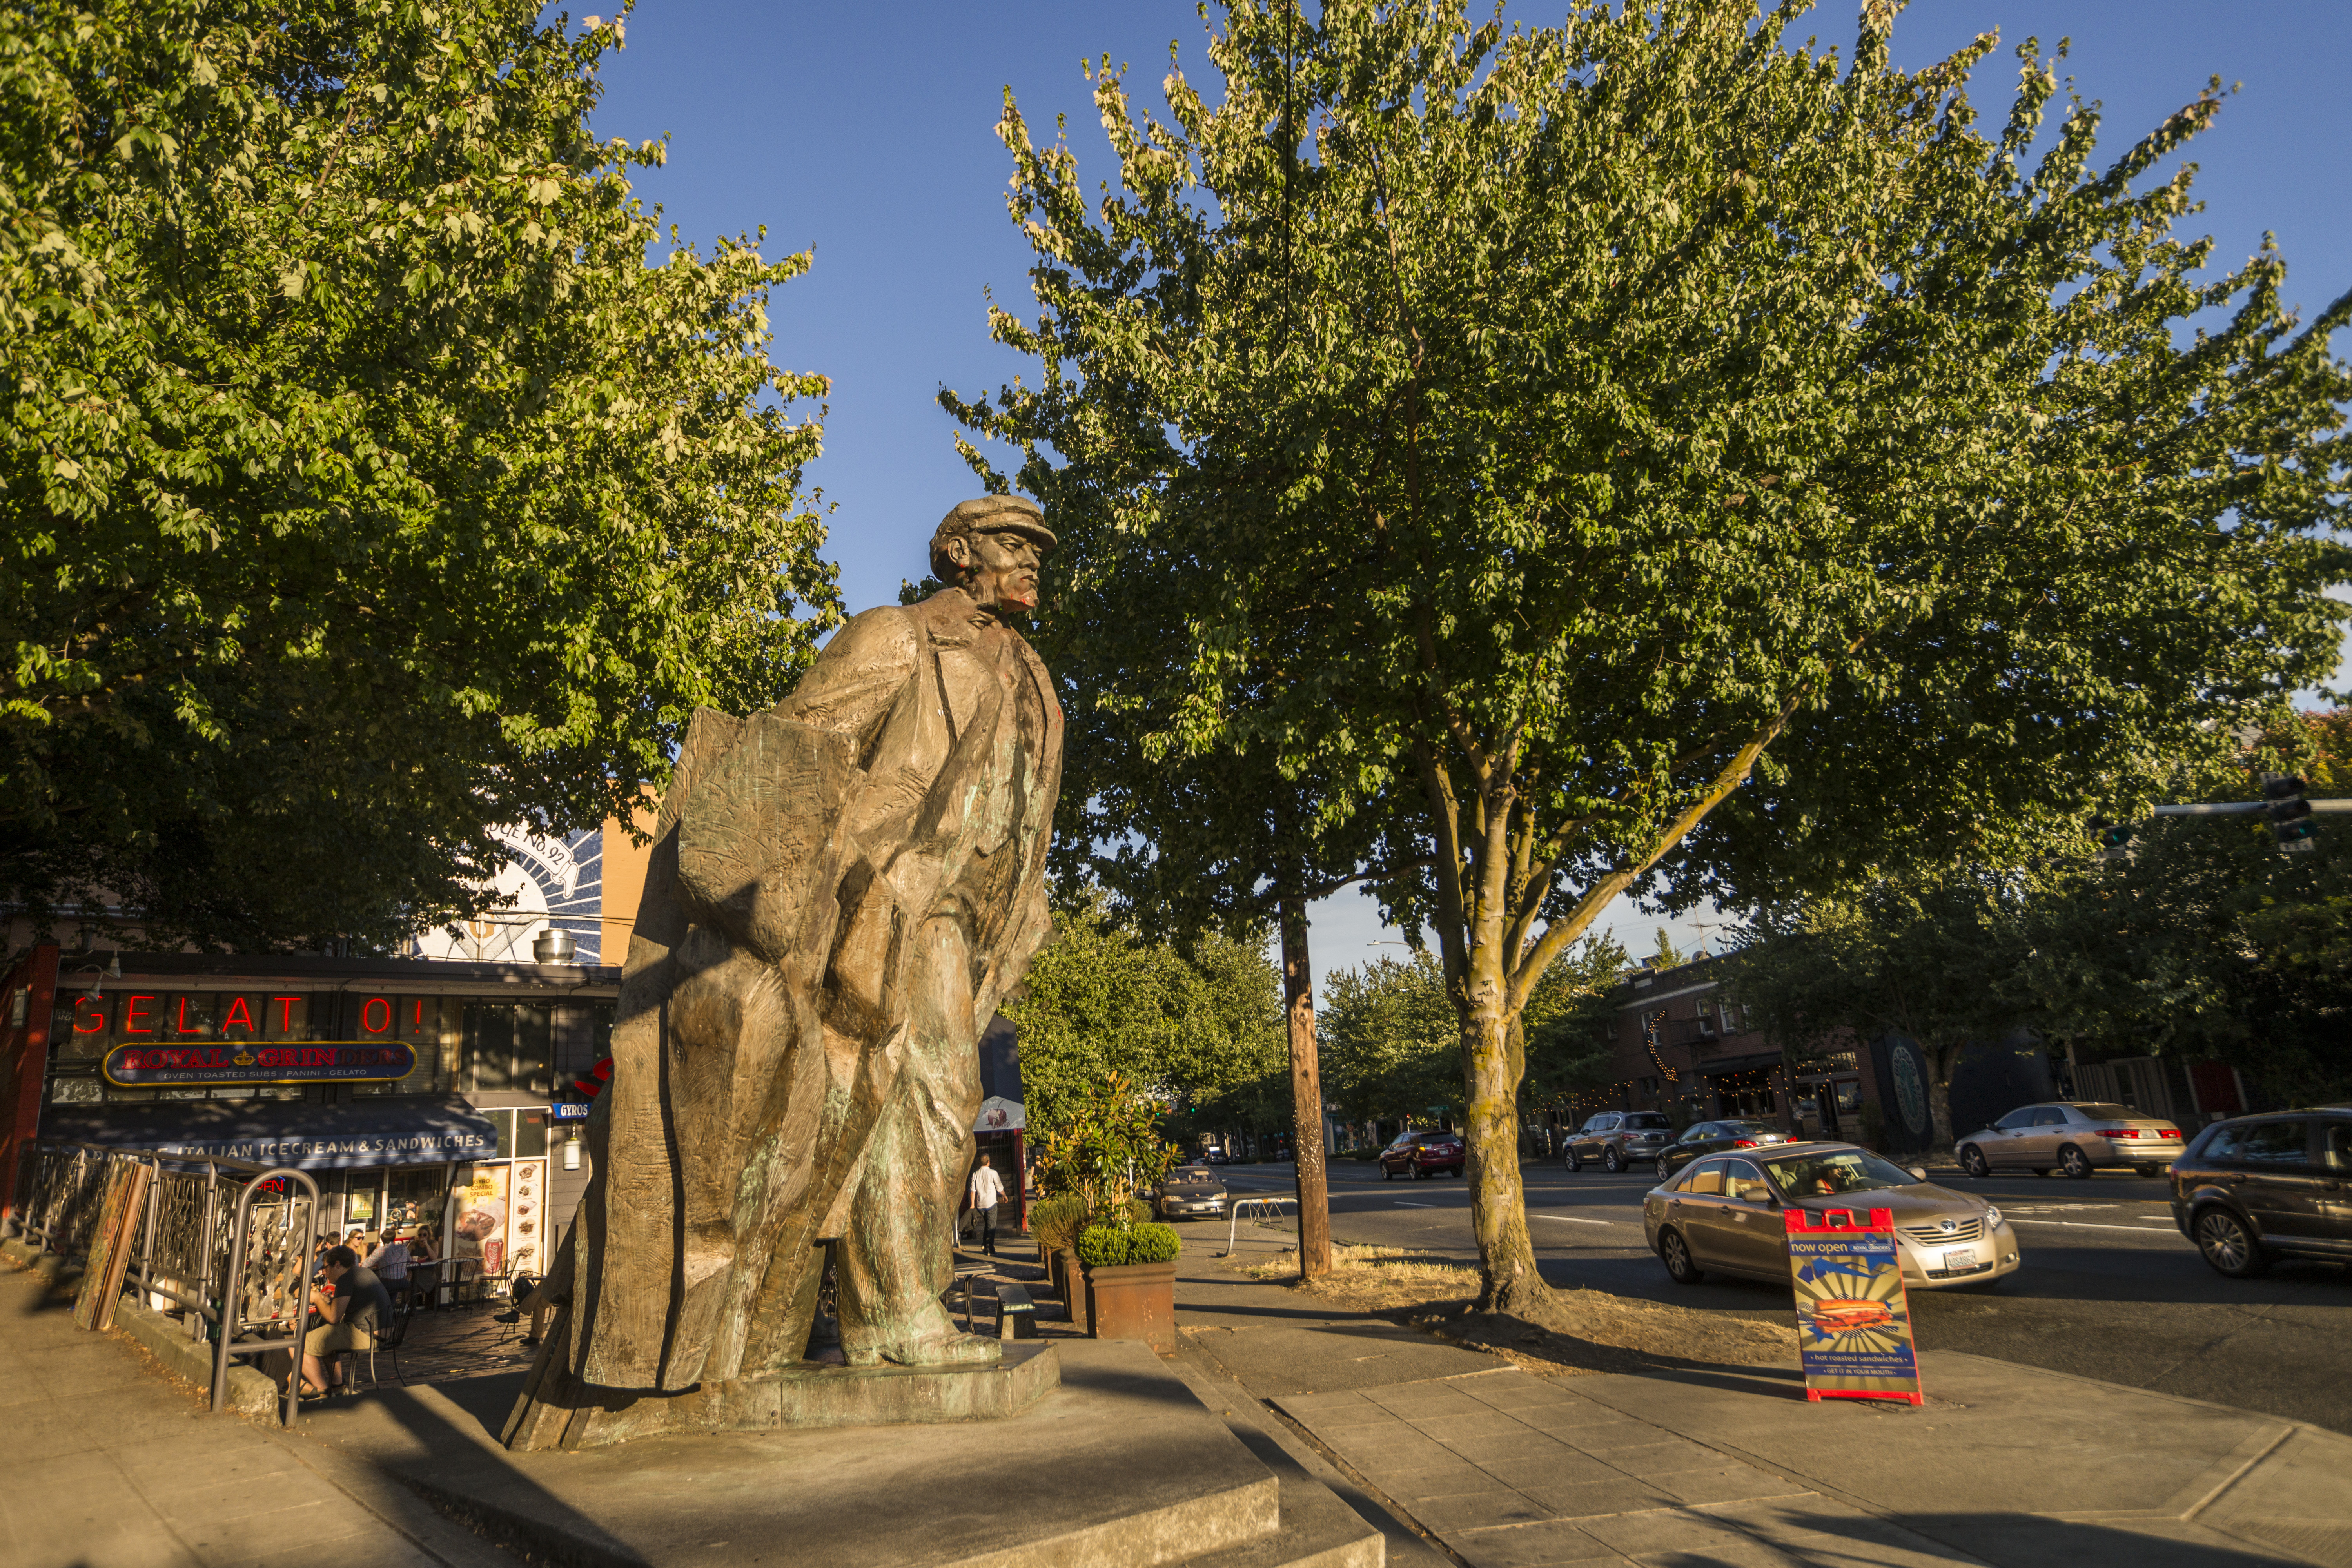 A large, bronze statue of a man, taller than the building behind it. It's overlooking a street, and it's framed by sidewalk trees on either side.